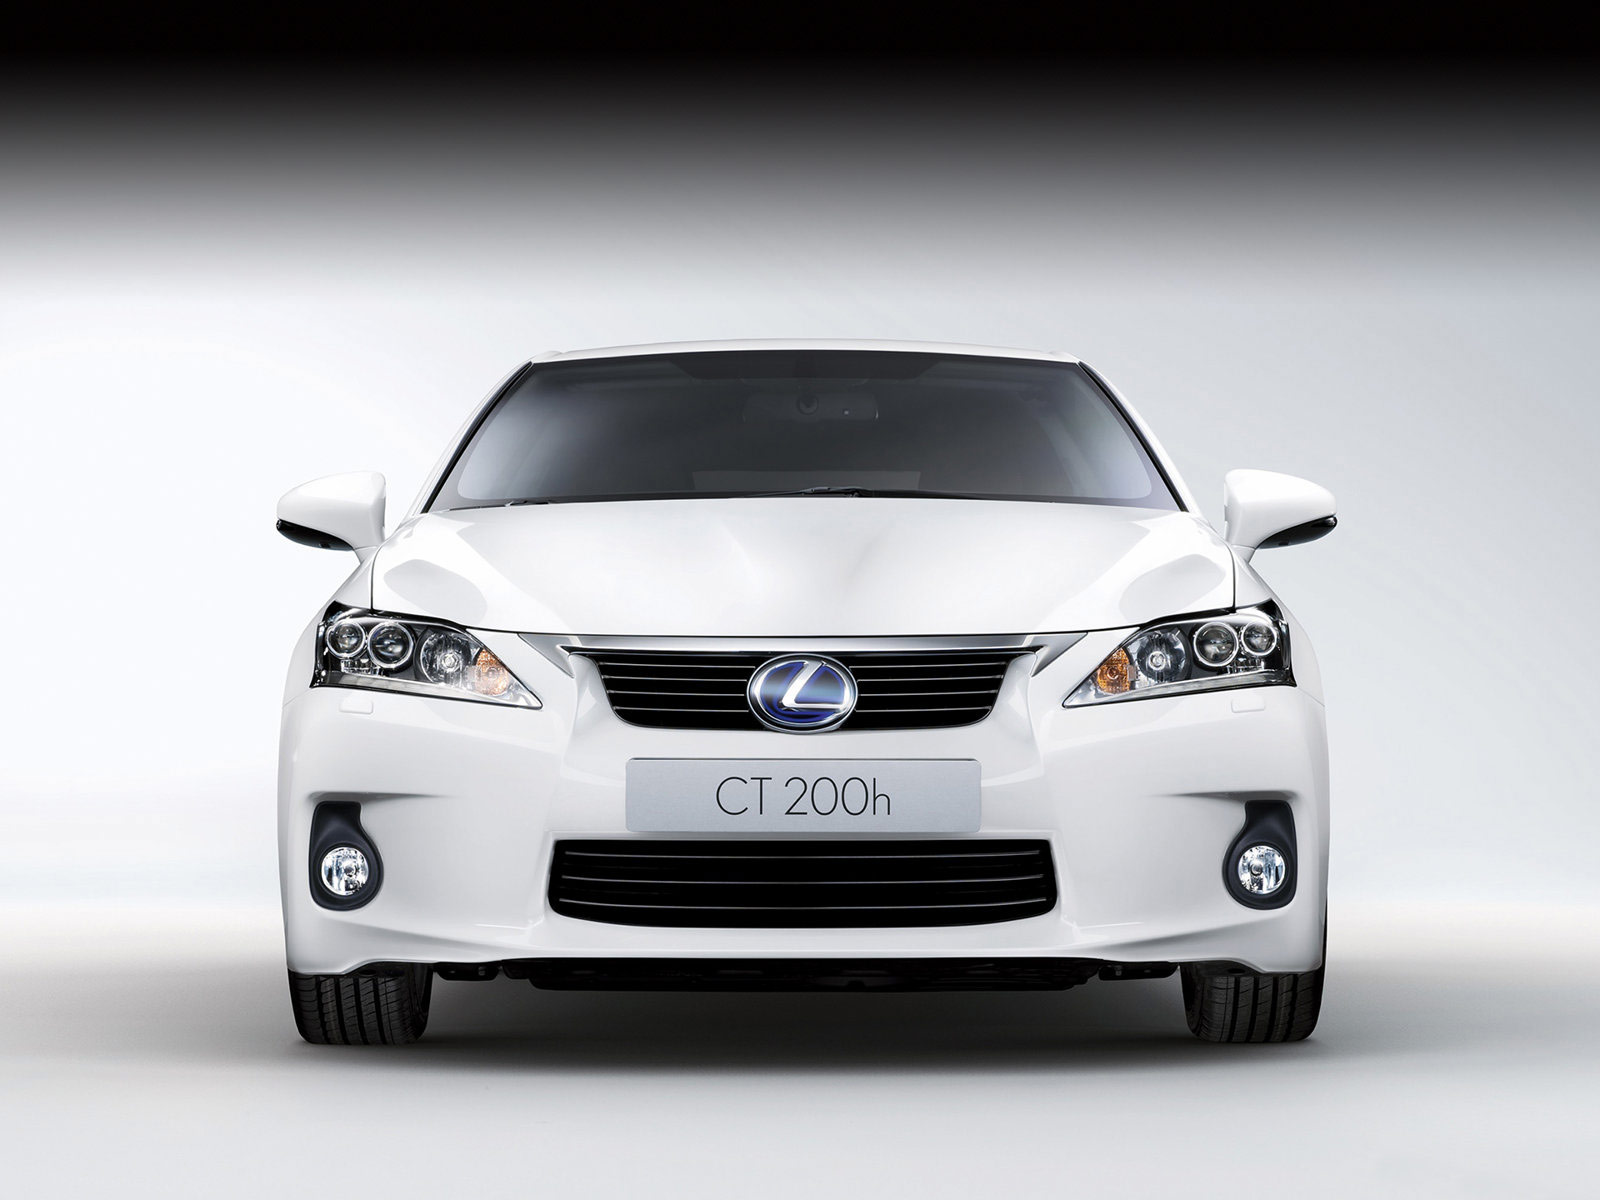 http://1.bp.blogspot.com/-87xxJl6vZBA/Th4r2C6P2pI/AAAAAAAAAEs/TphZSymmNi4/s1600/lexus_CT_200h_2011_japanese_car_wallpapers_6.jpg